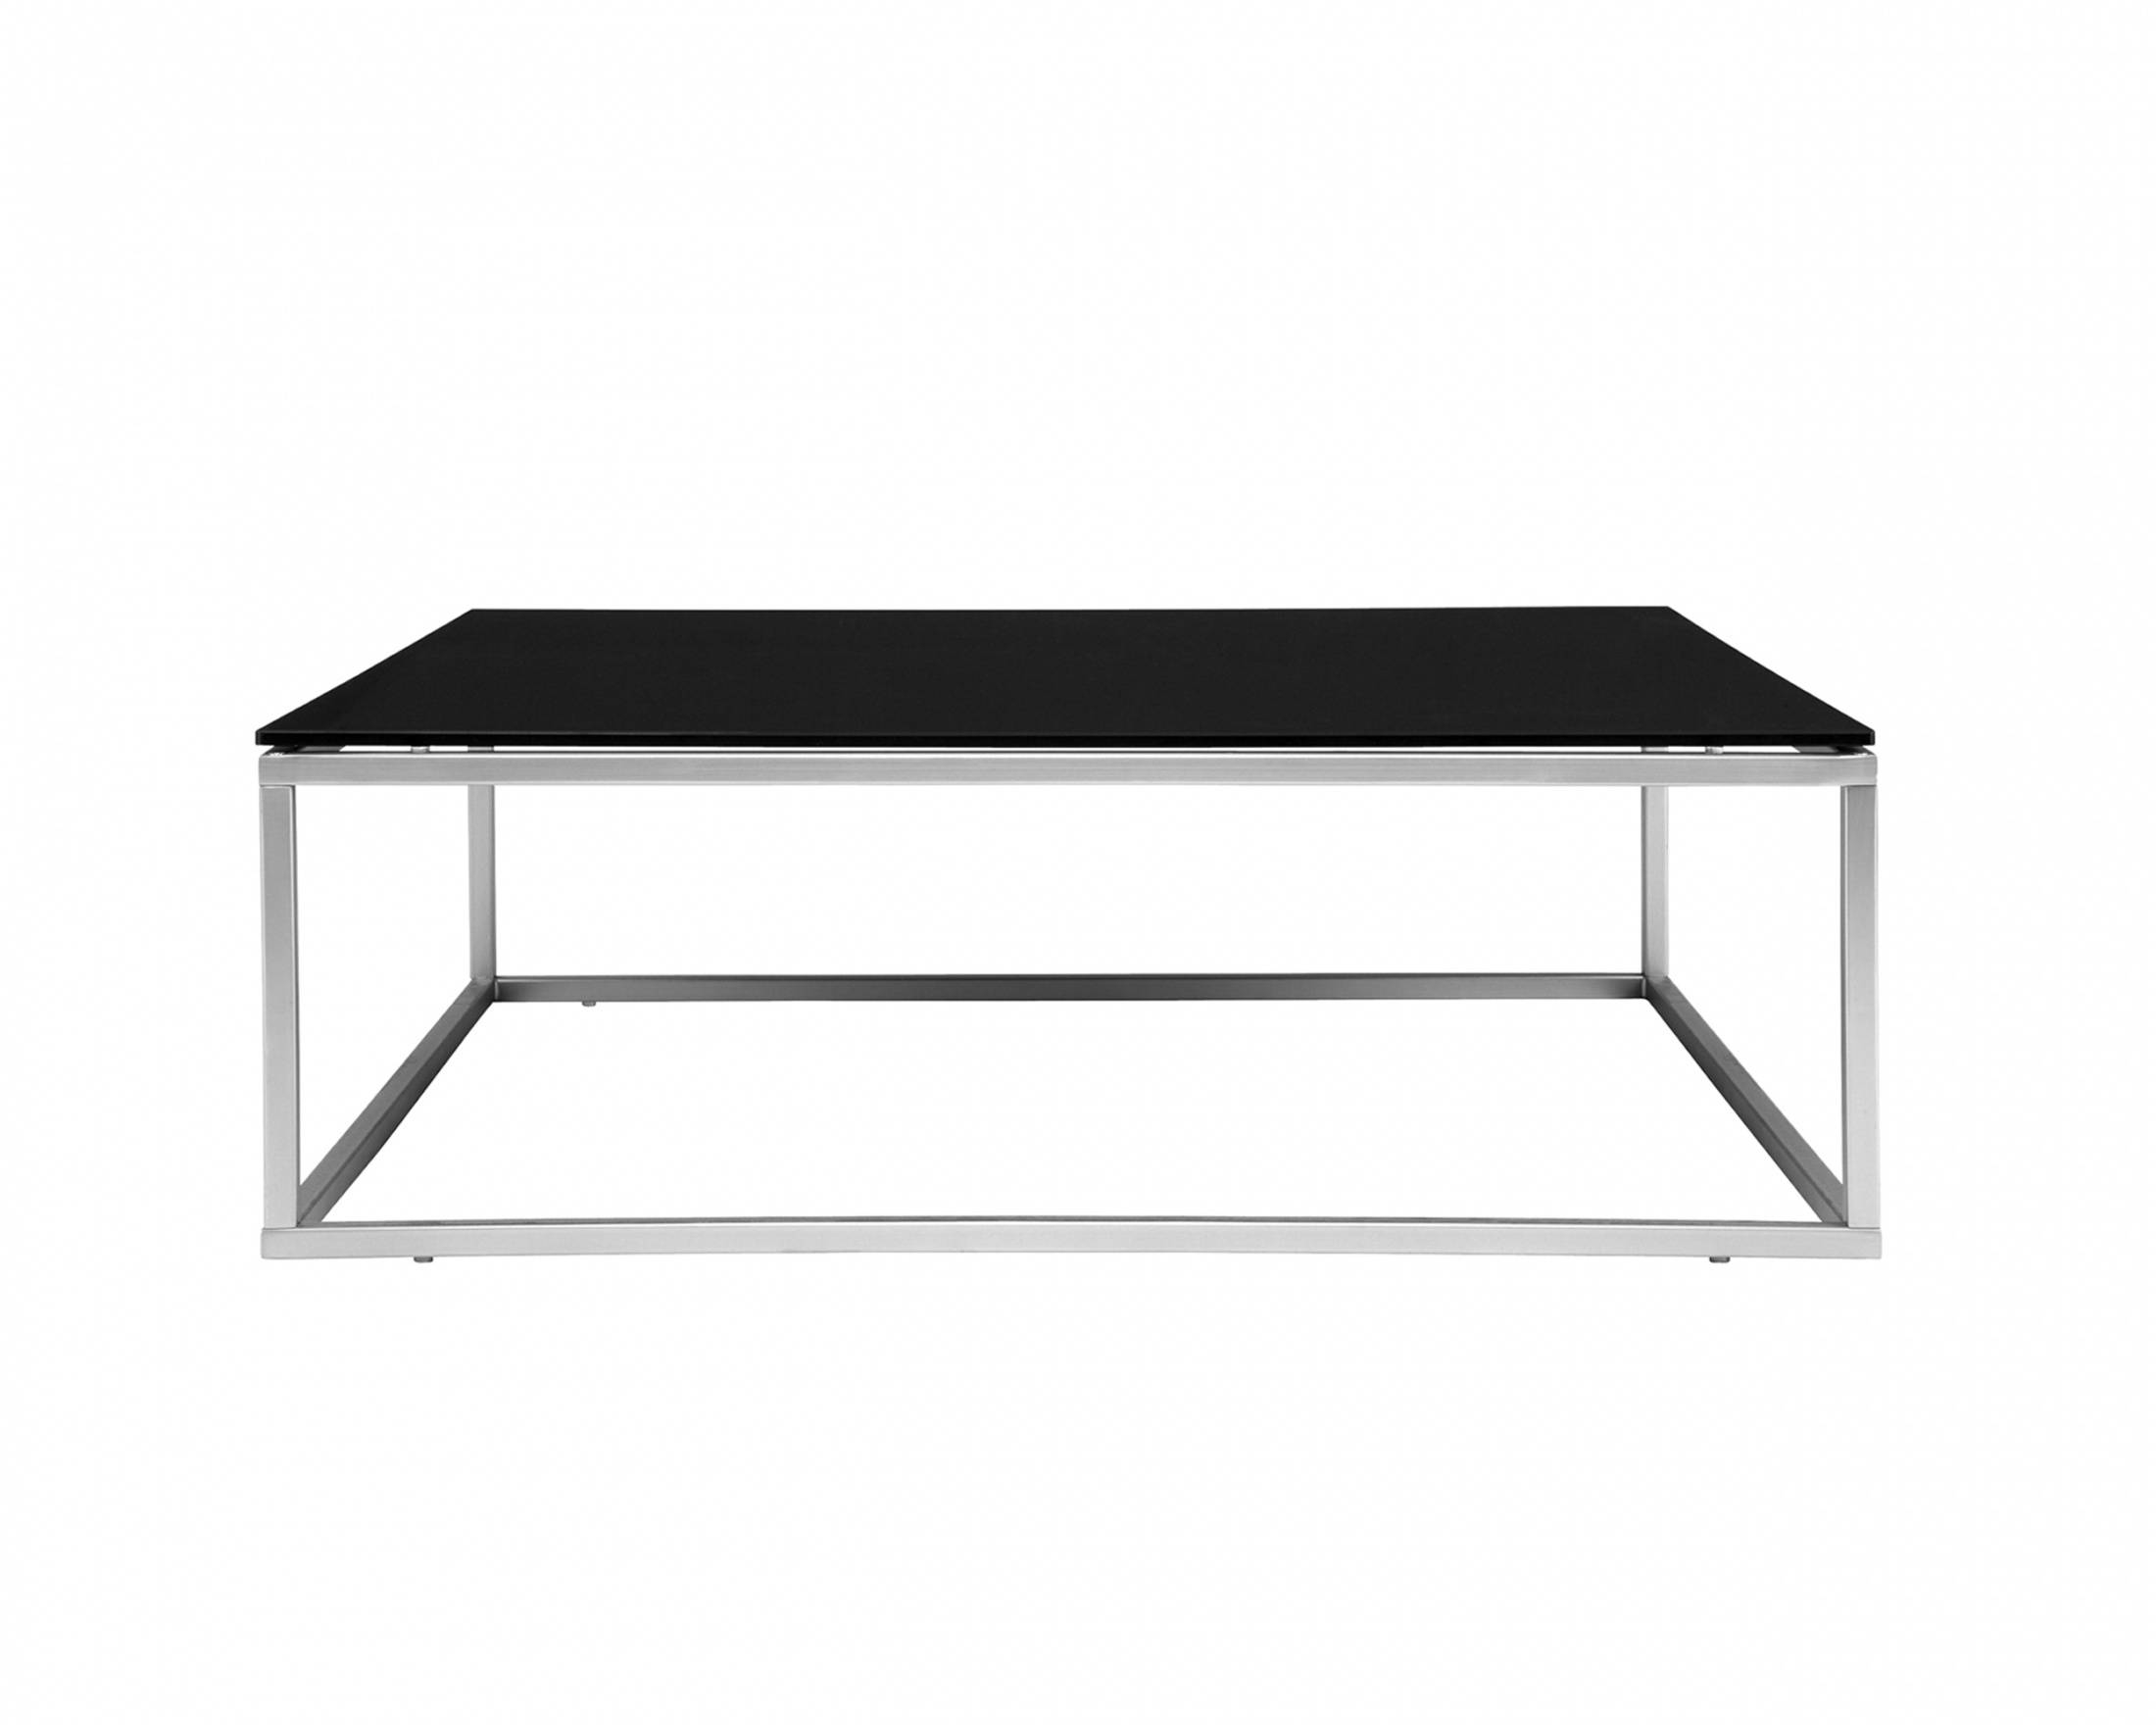 Black Glass Coffee Table With Chrome Legs | Coffee Tables Decoration Throughout Chrome Glass Coffee Tables (View 3 of 30)